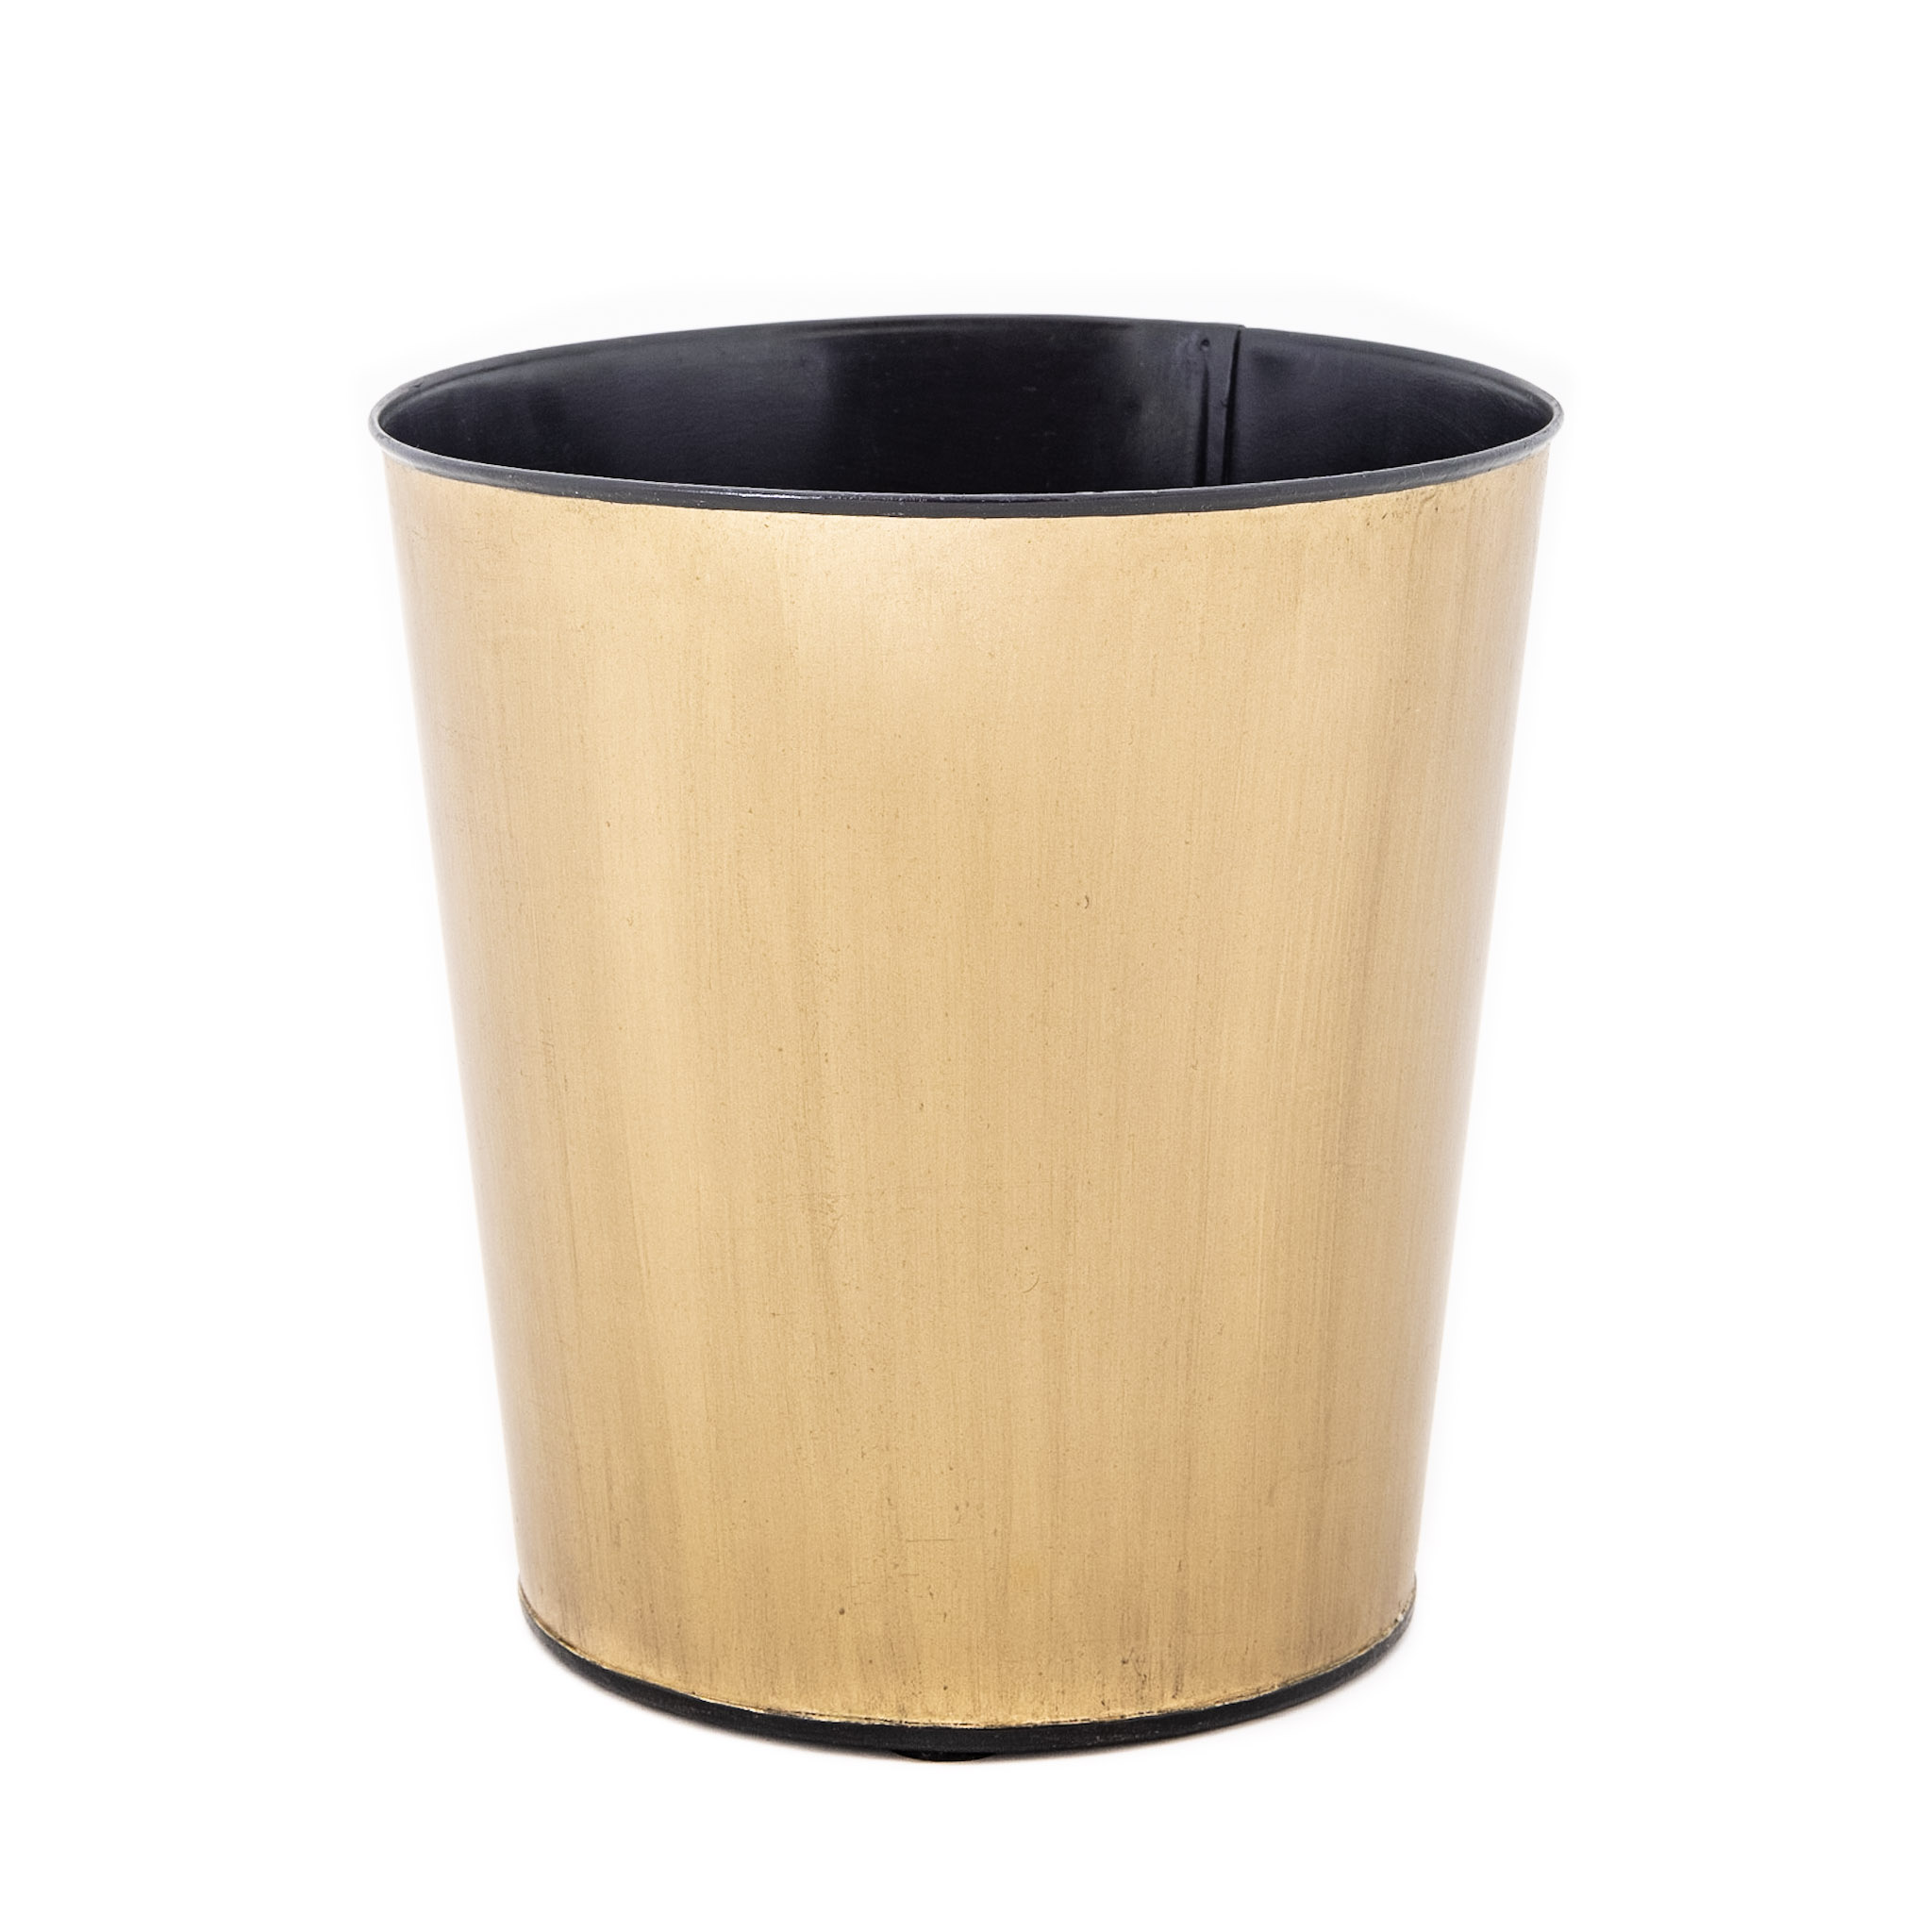 Office Study Hotel quality waste paper bin bronze